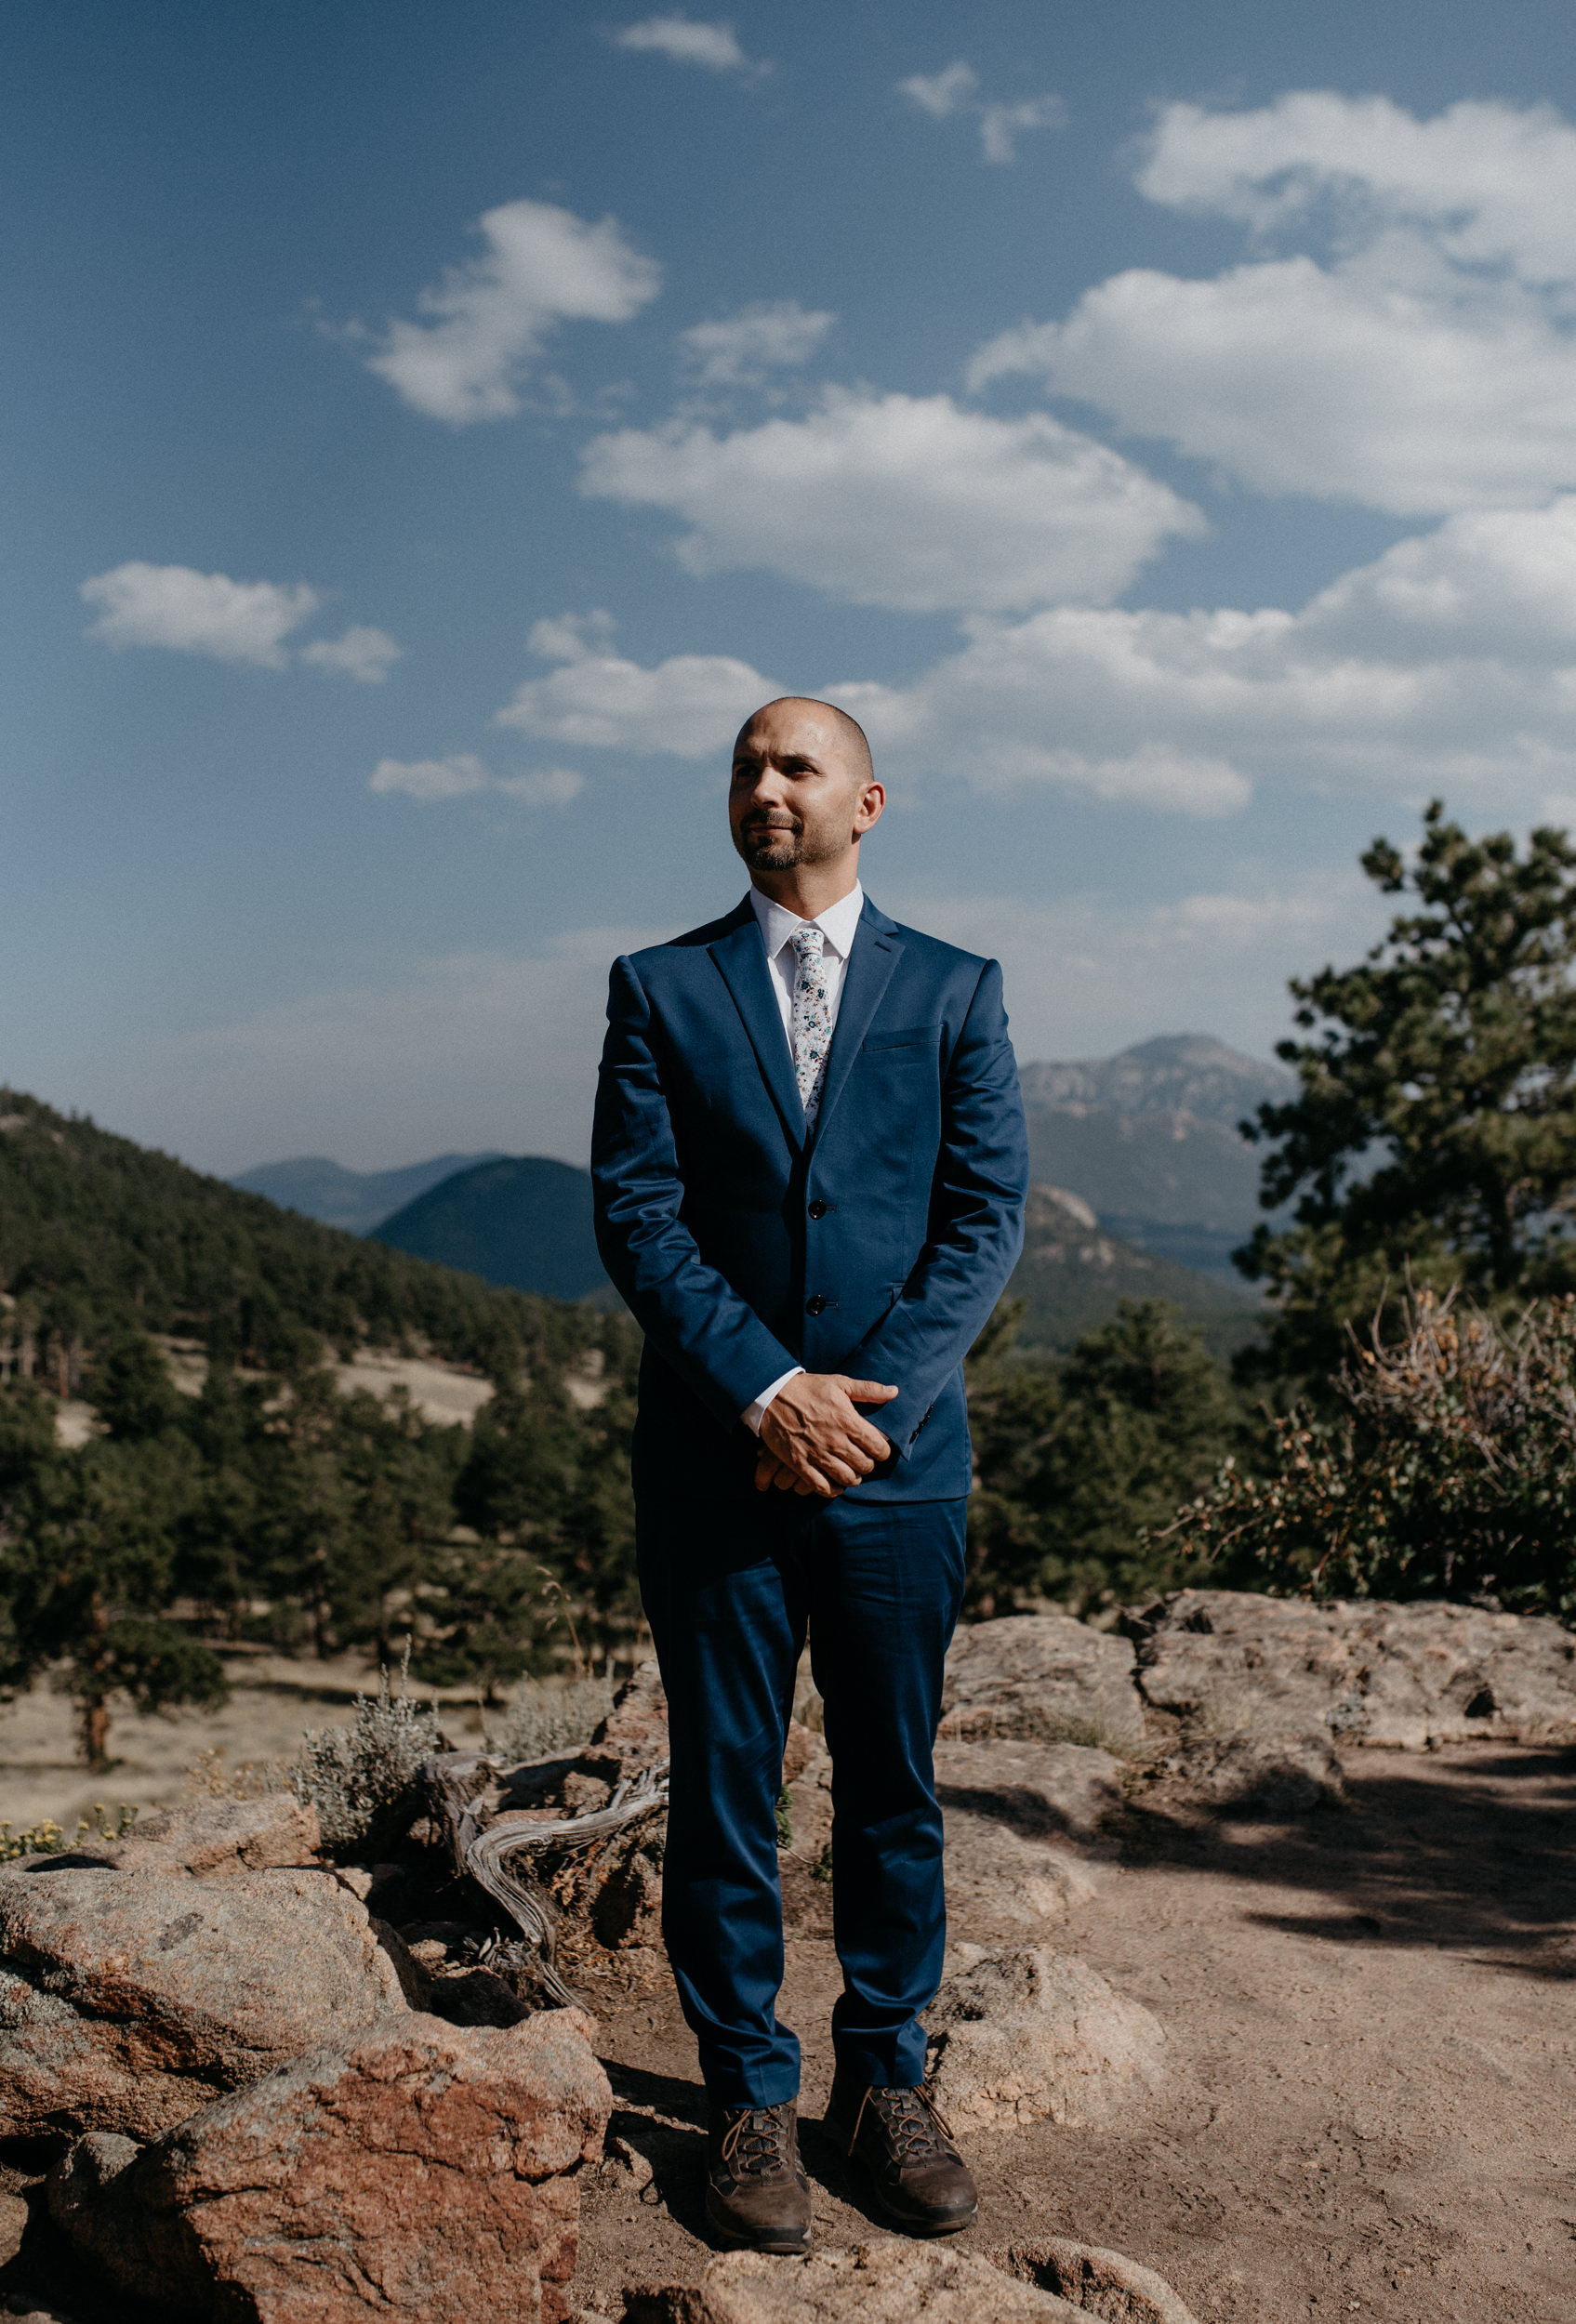 Groom waiting for bride for an elopement at 3M curve. Colorado wedding and elopement photographer.